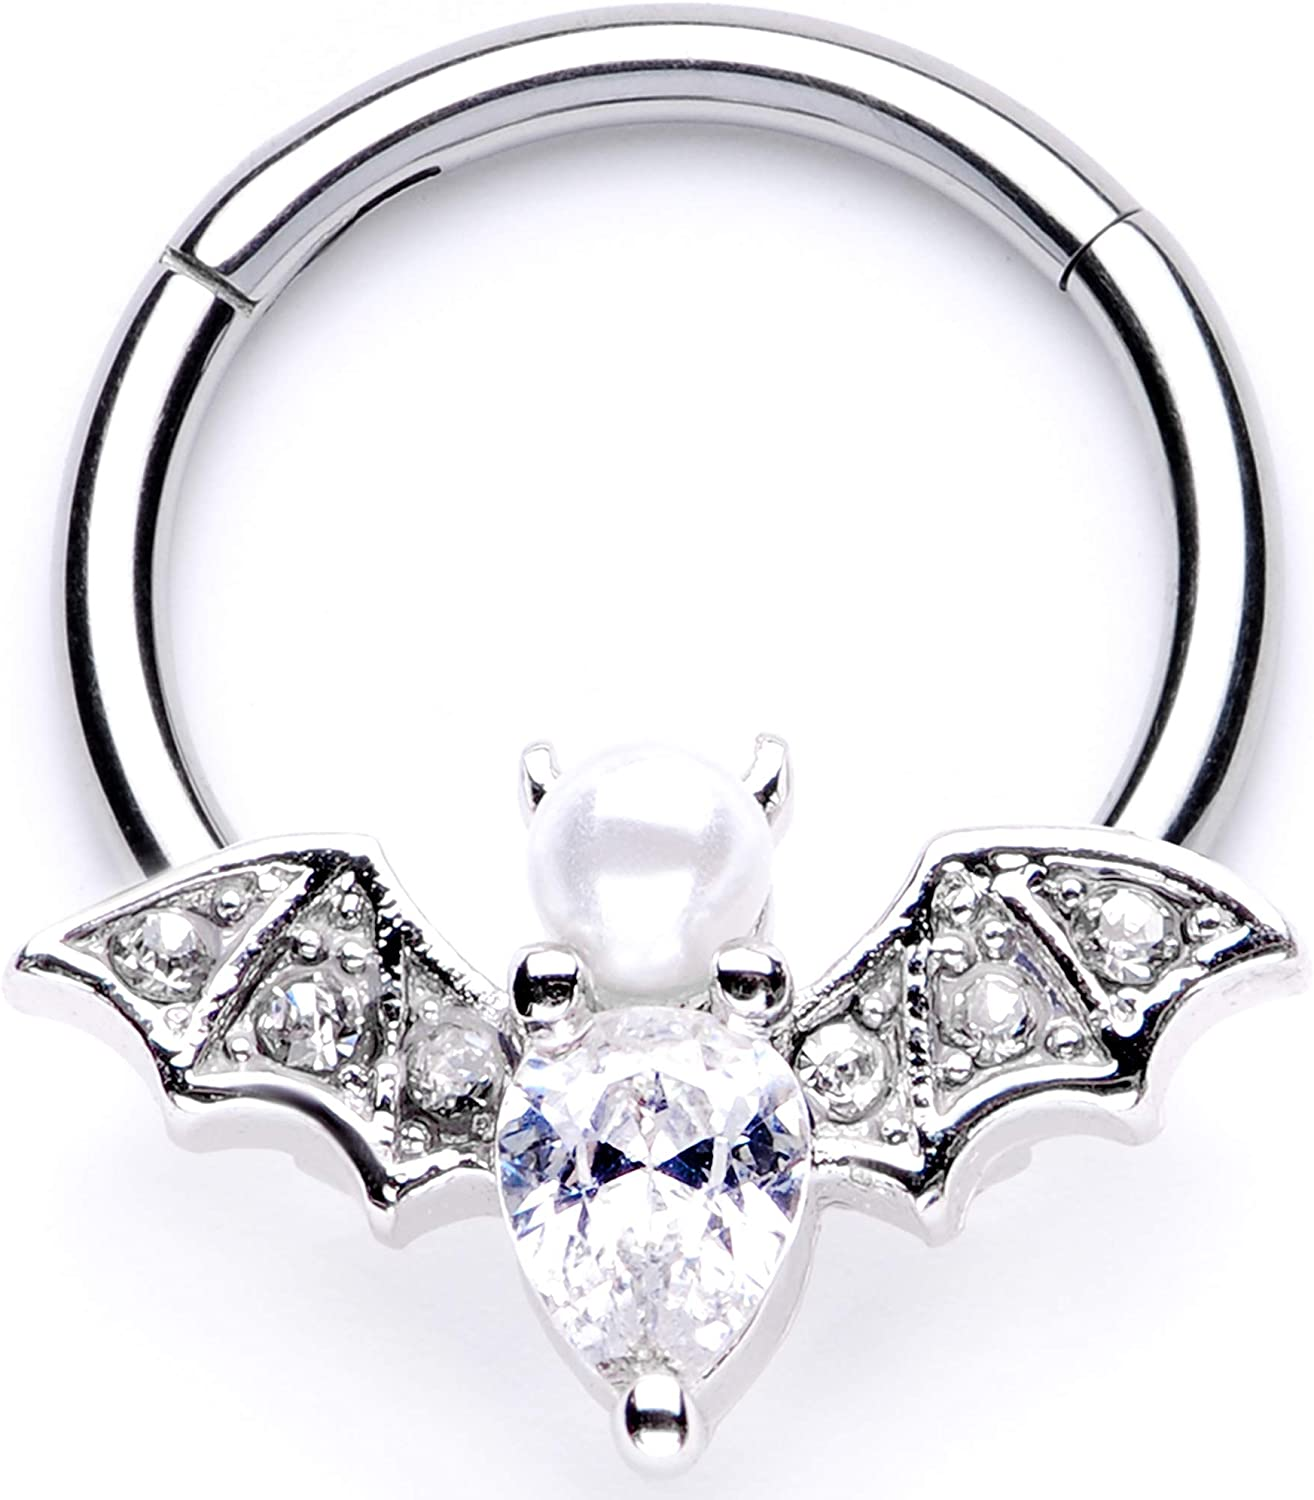 Body Candy Womens 16G Steel Hinged Segment Ring Seamless Cartilage Nipple Ring Clear Bat Nose Hoop 3/8